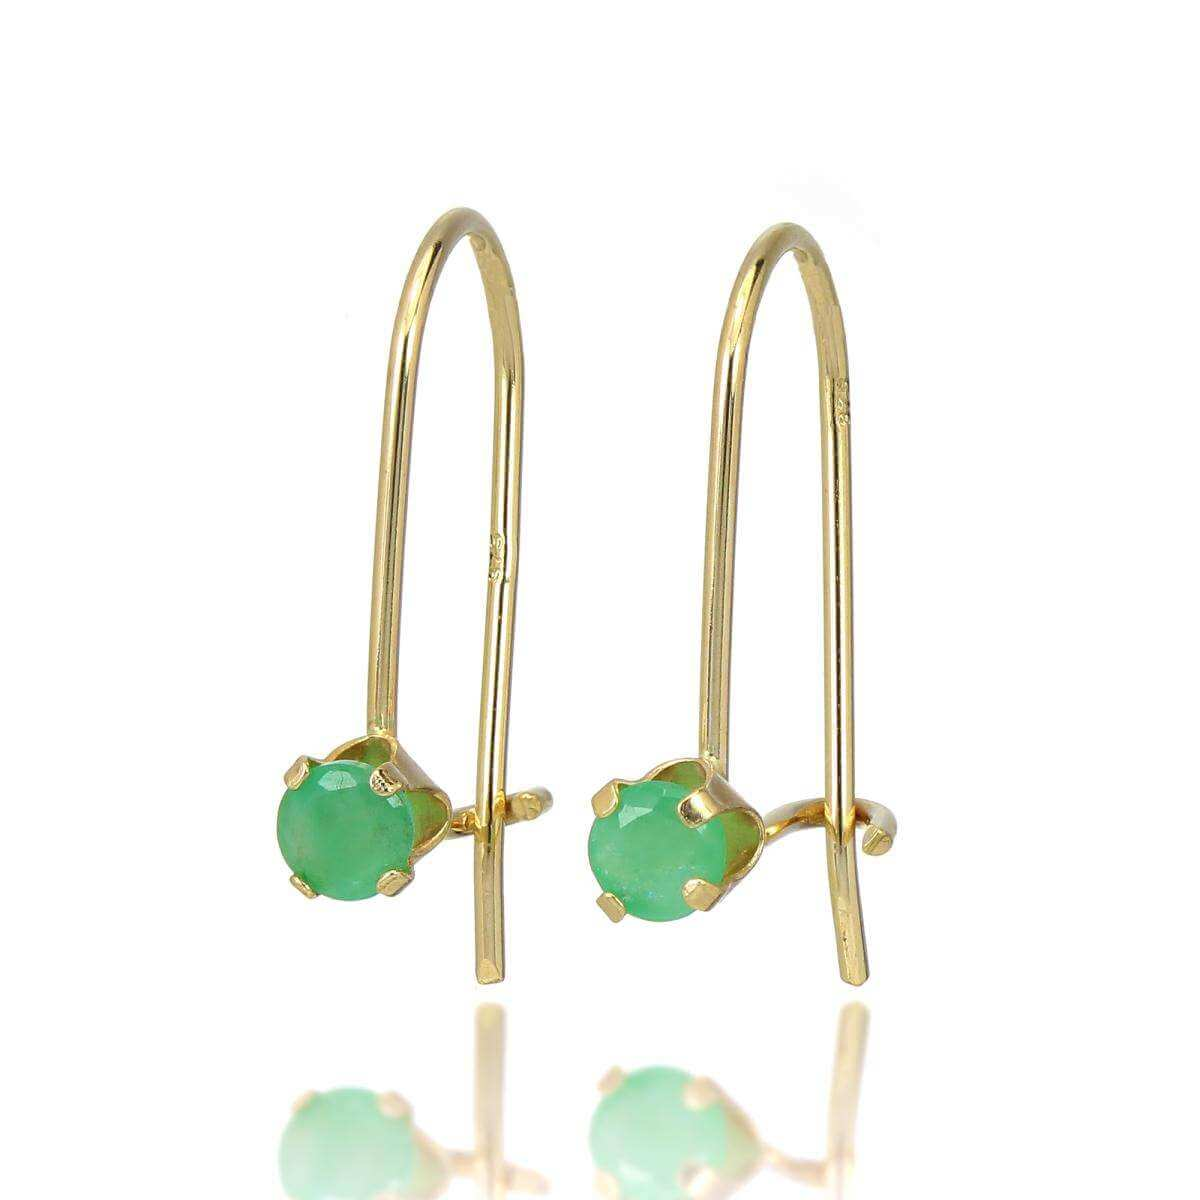 9ct Gold & 3mm Round Gemstone Leverback Earrings Emerald